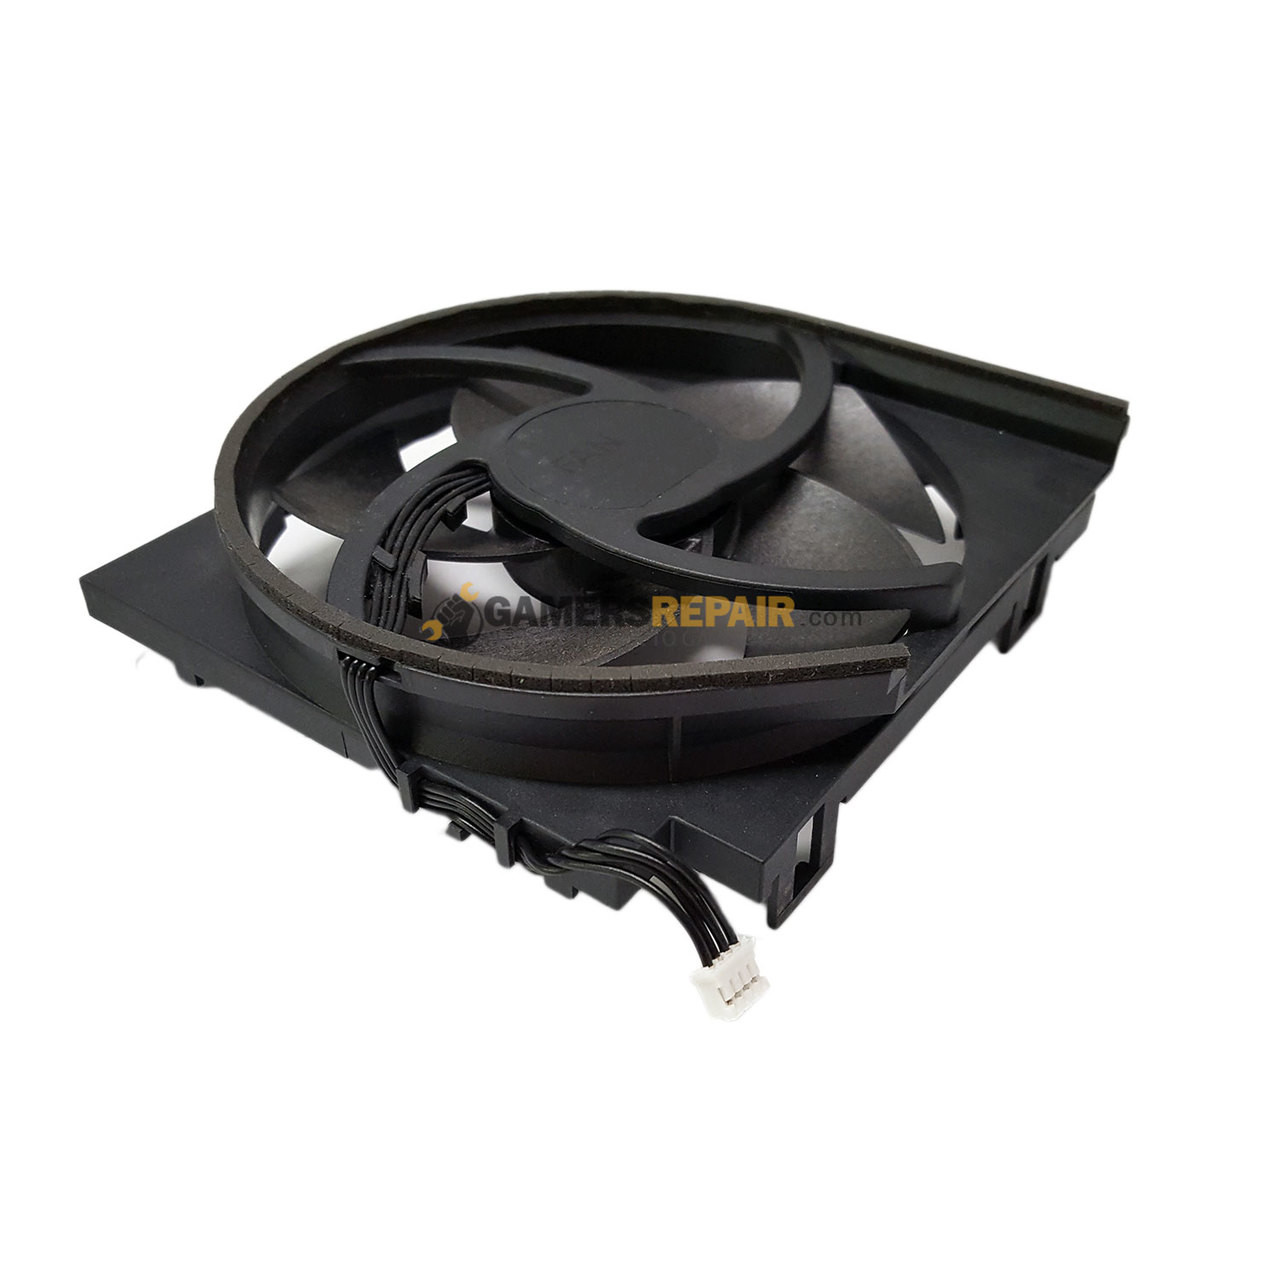 OEM Internal Cooling Fan for Xbox ONE S